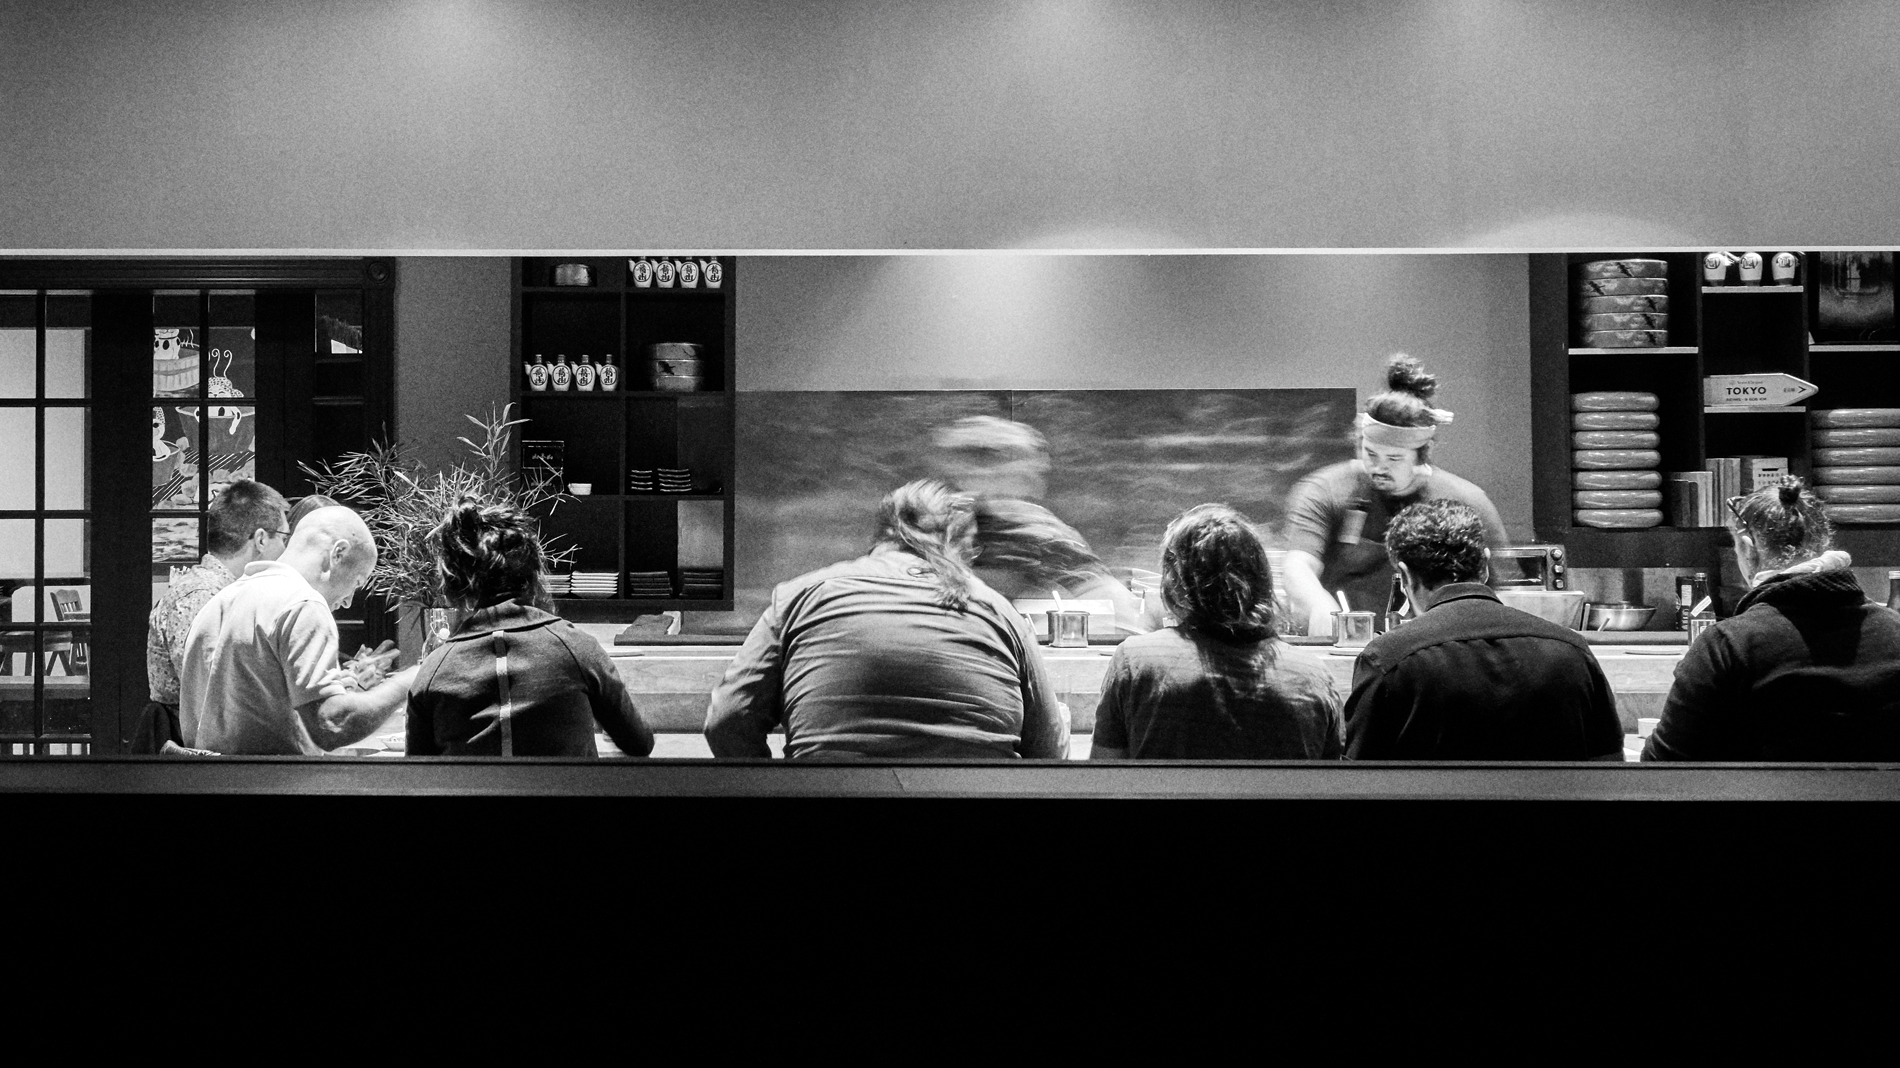 a black and white image of a sushi chef working at a crowded bar